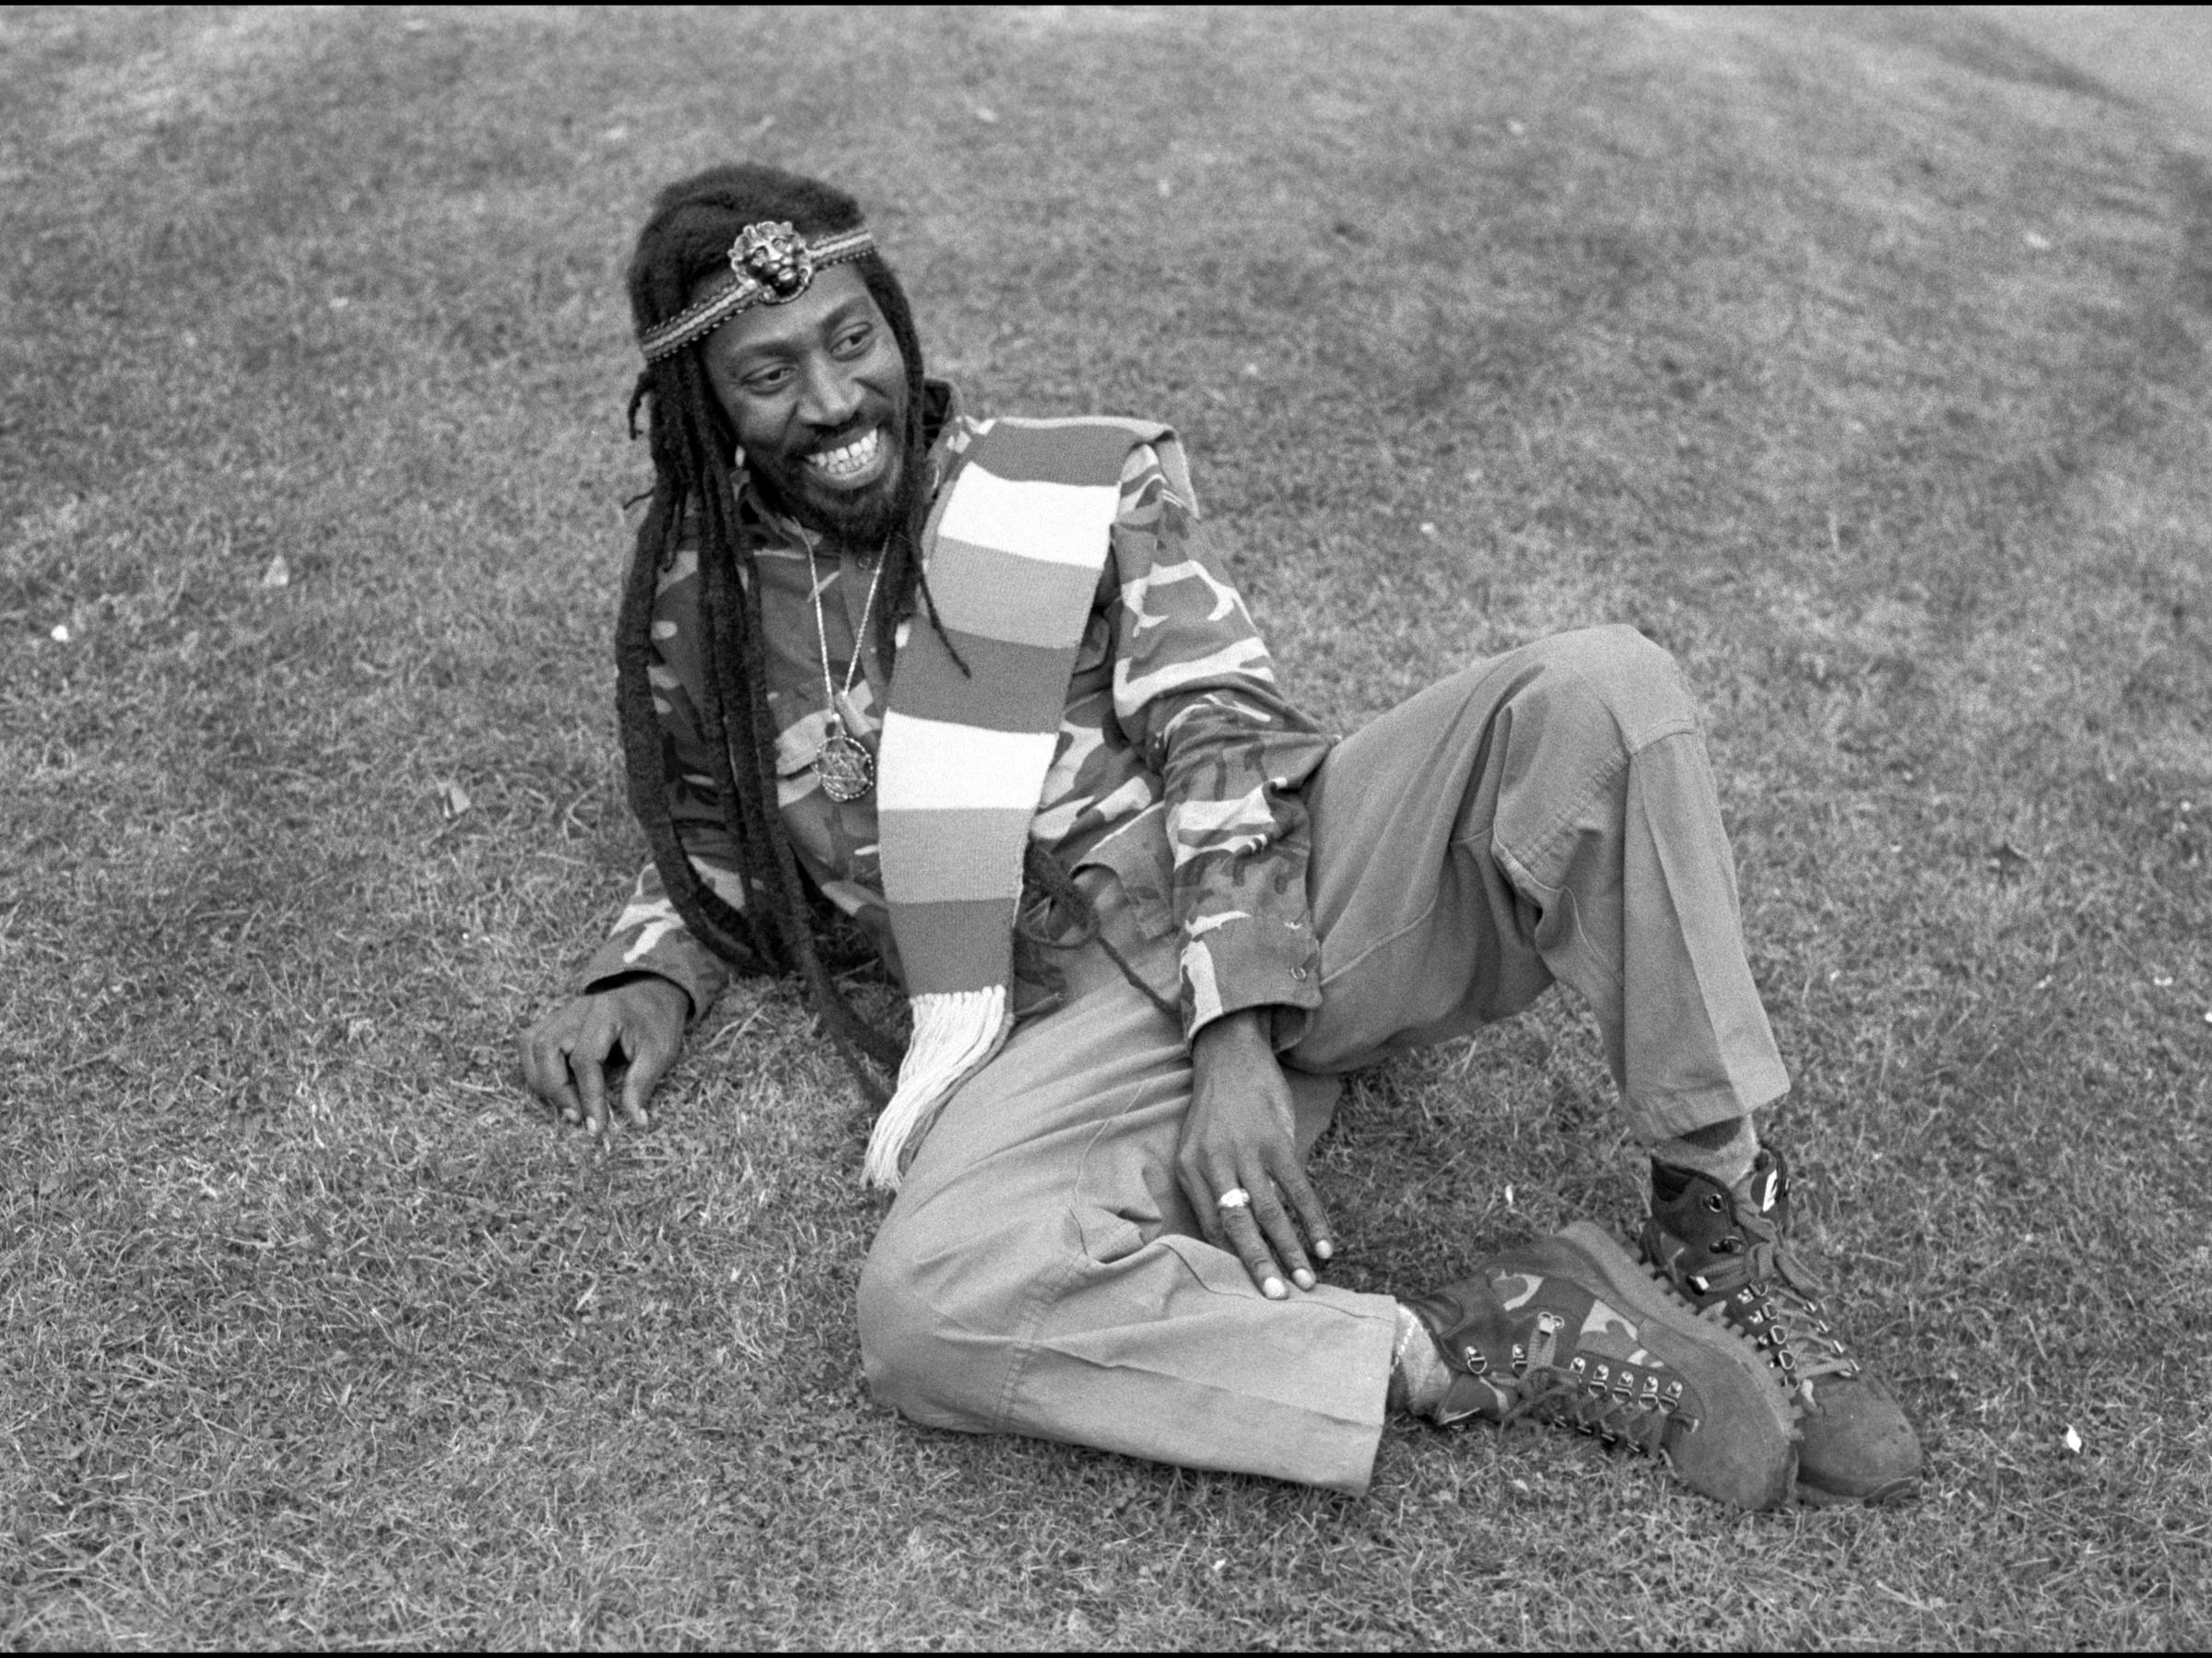 Bunny Wailer, Iconic Reggae Singer And Wailers Co-Founder, Has Died At Age 73 | WJCT NEWS